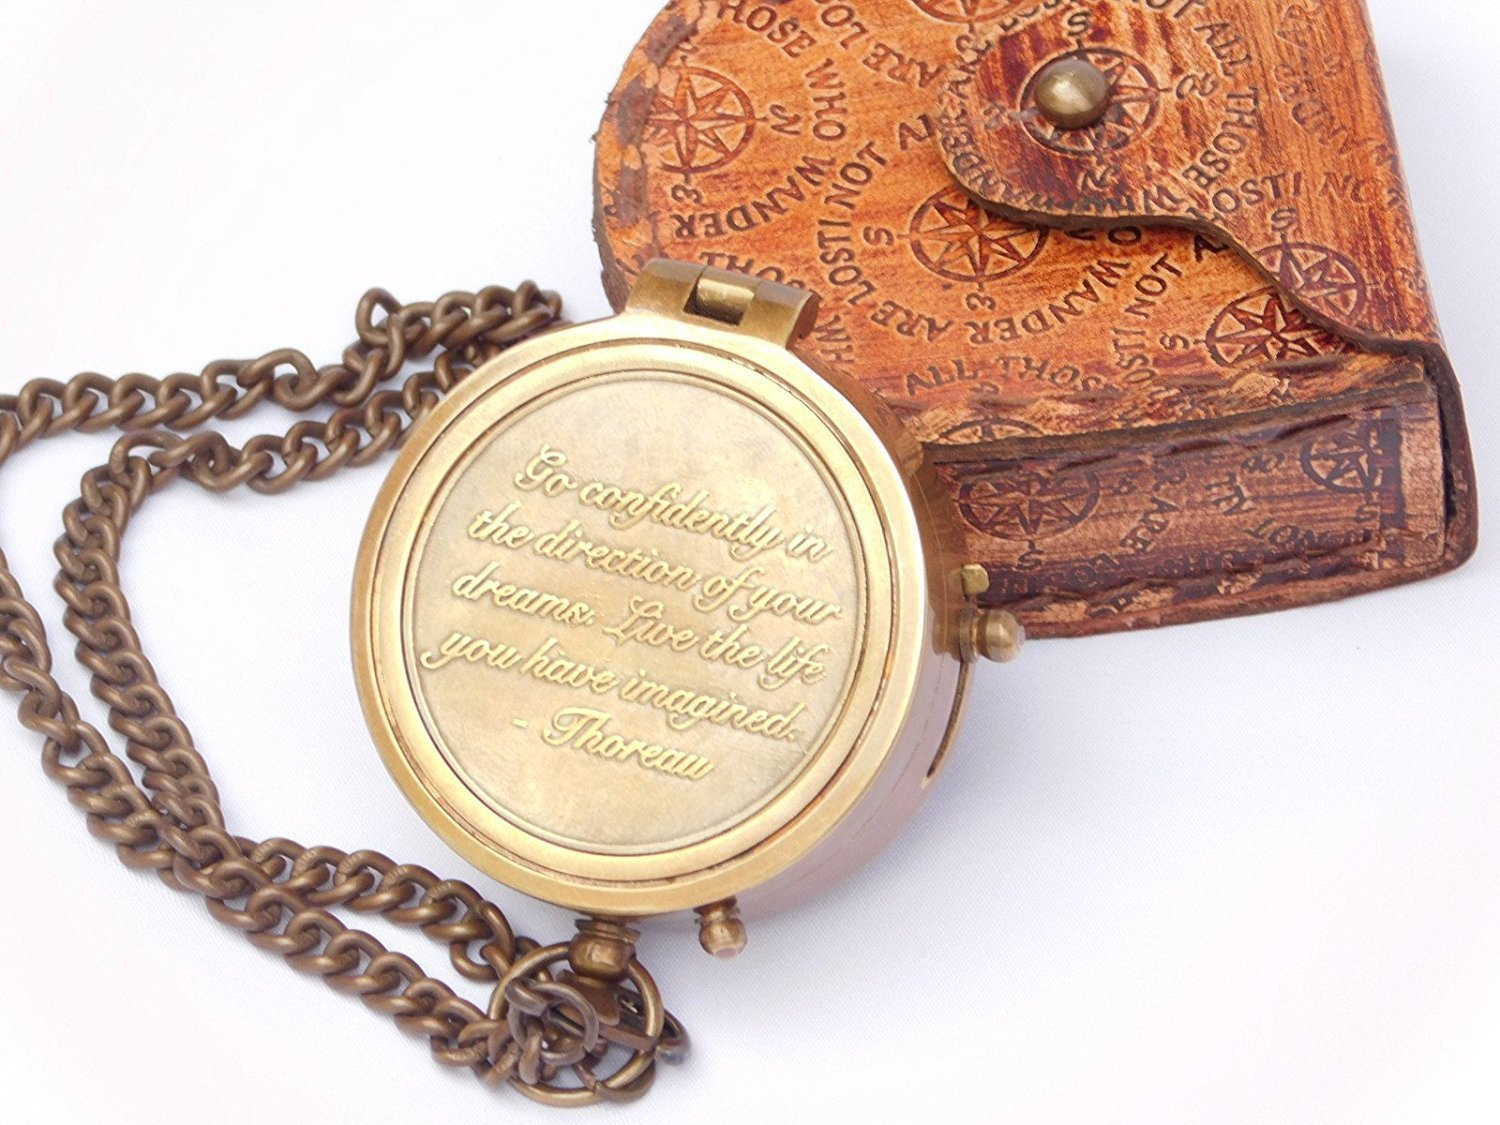 Thoreau 's Go Confidently Quote Engraved Compass with Stampedレザーケースby Eraコレクション B074KQ1FNF